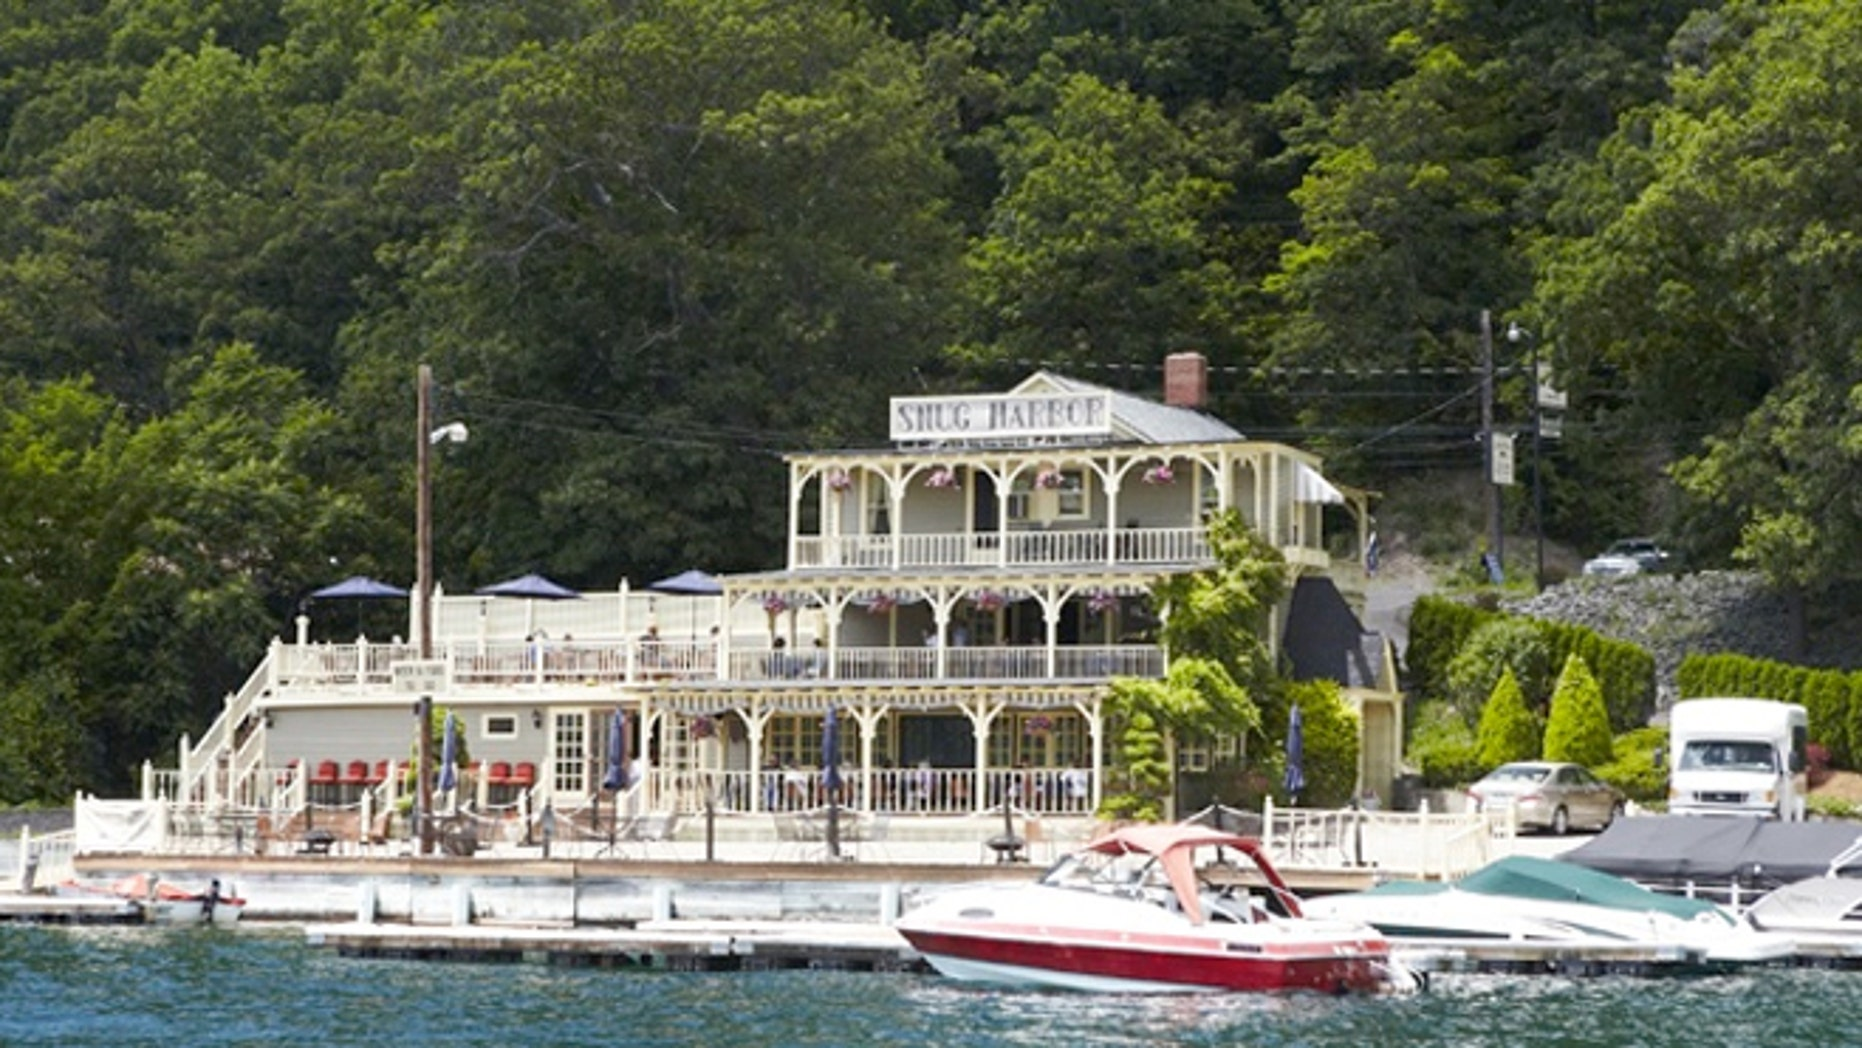 This year's Coolest Small Towns in America contest had a tie for first: Hammondsport, N.Y. (shown above), and Beaufort, N.C.